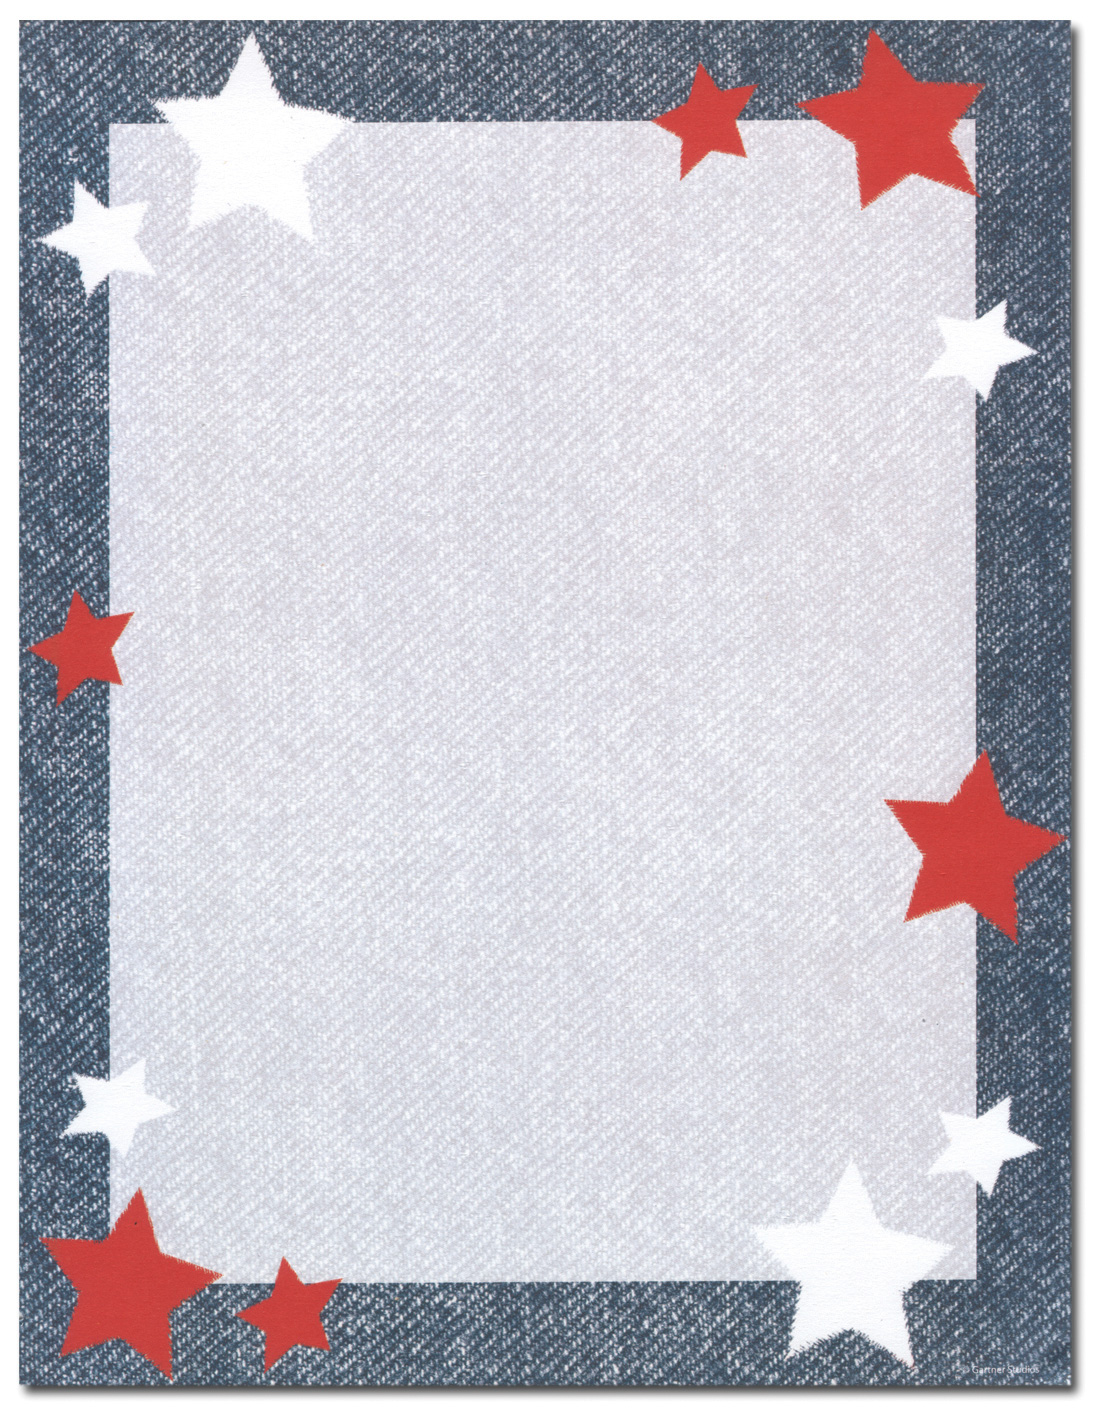 Star Blue Border Laser Paper  - This patriotic paper will show your true spirit with a bold blue border and Red and white stars along the edges.  Colored envelopes are available but are sold seperate.